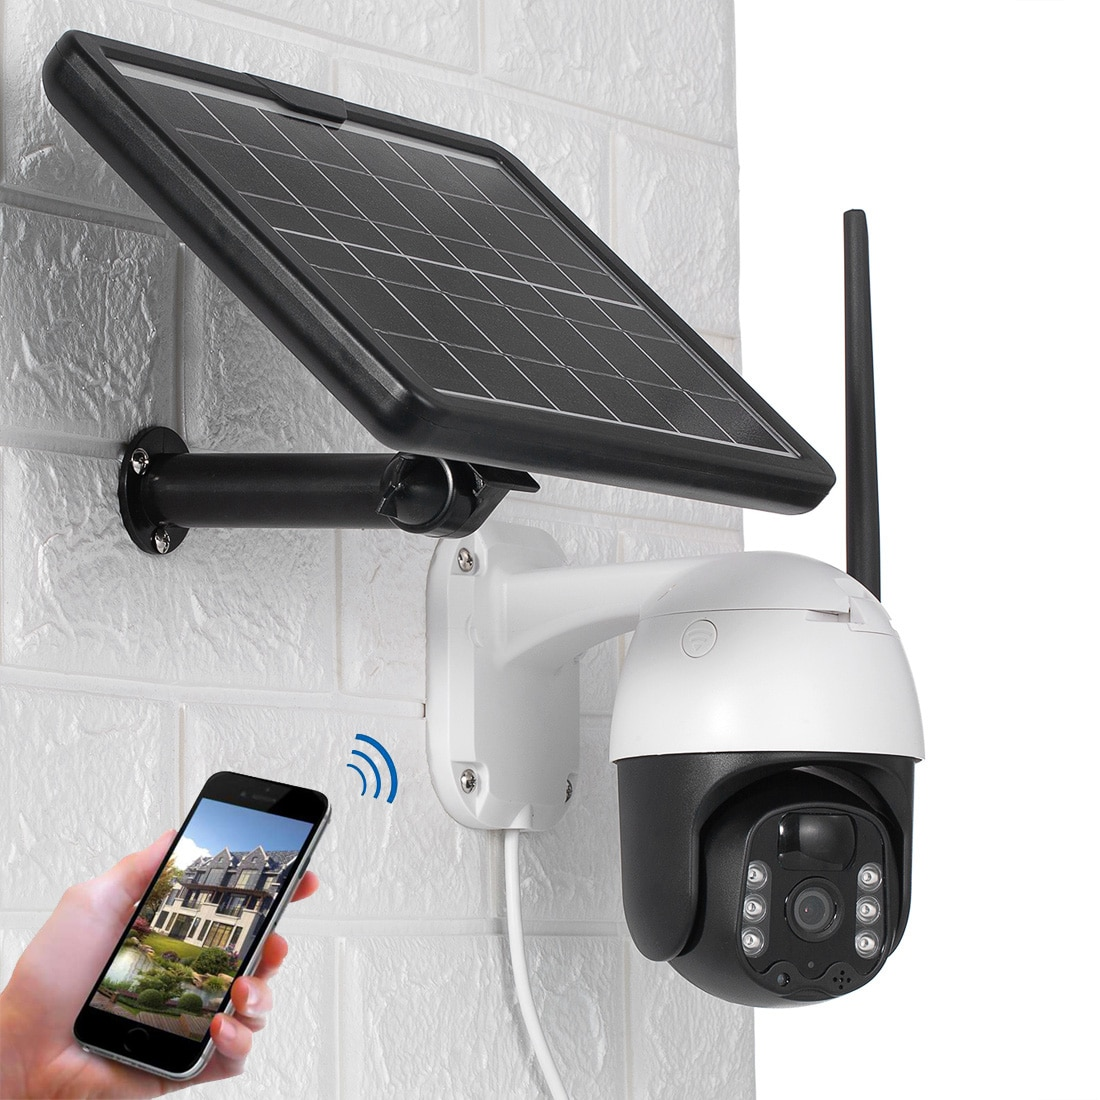 Solar Power 4G 3G LTE WiFi PTZ 1080P IP Camera 4X Zoom Cloud Wirefree Battery Powered PIR Motion Detection Colorful Night Vision